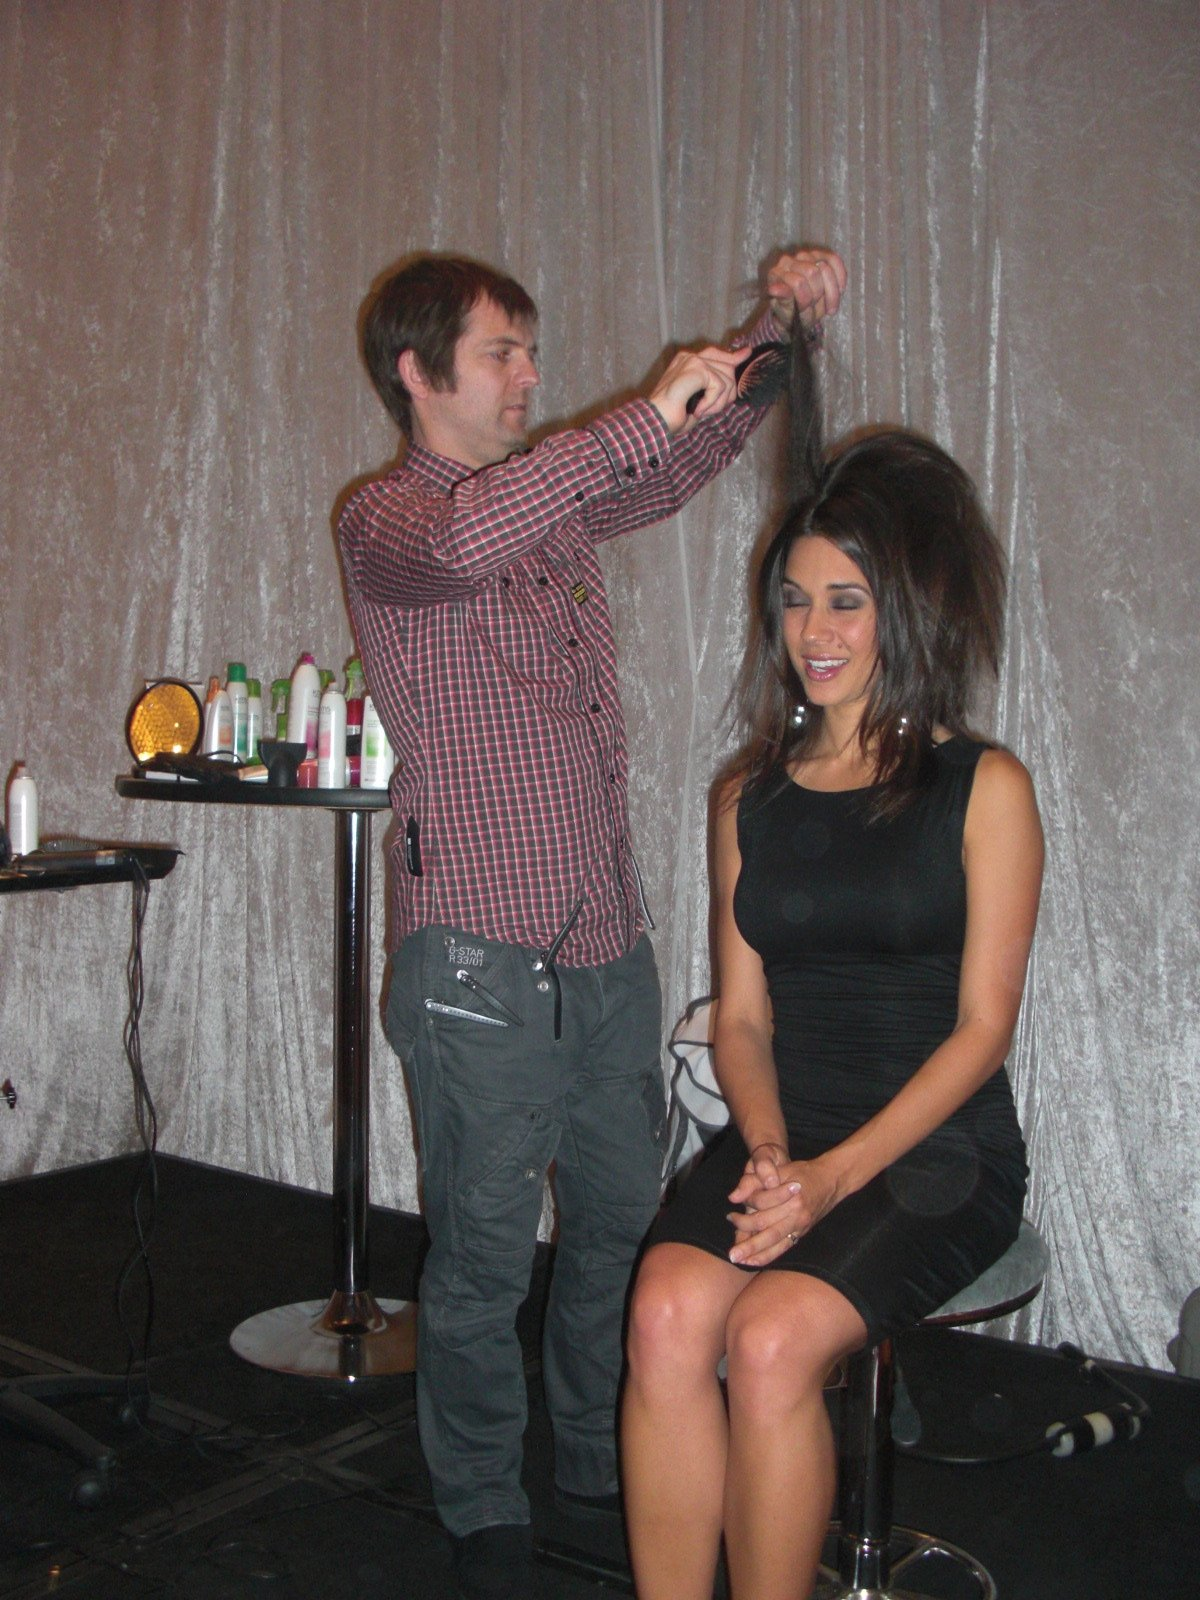 KMS International Artistic Director Edwin Johnston doing hair in the KMS California Gifting Suite